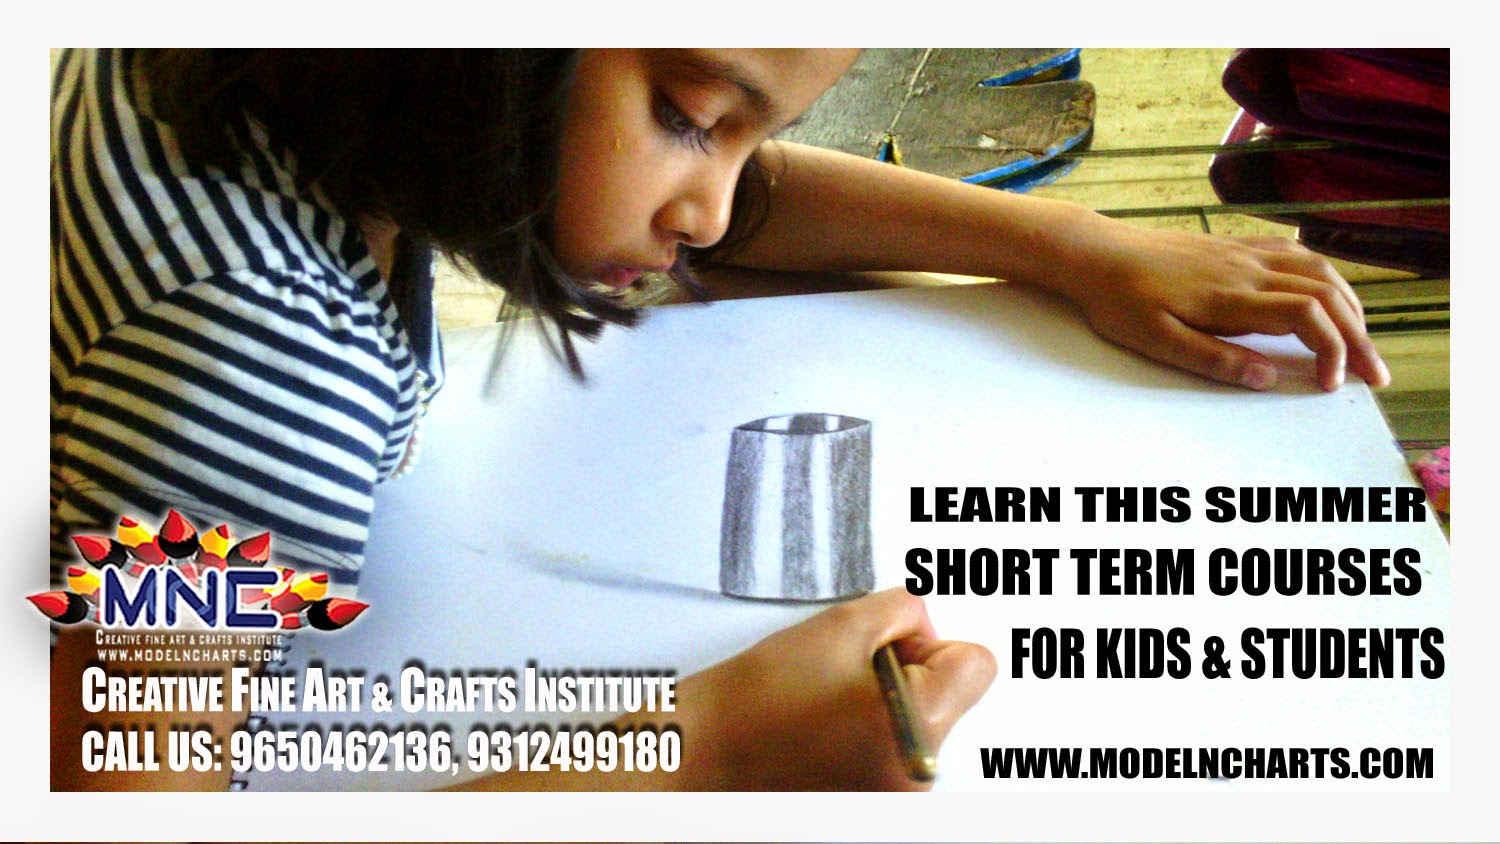 SUMMER ART & CRAFTS HOME TUITION, HOME TUTOR, HOME CLASSES, FINE ART INSTITUTE BEST IN DELHI/NCR KIDS COURSES - DRAWING, CLAY MODELING, PENCIL SKETCHING, CREATIVE ART CRAFT WORKSHOP IN DELHI GURGAON NCR